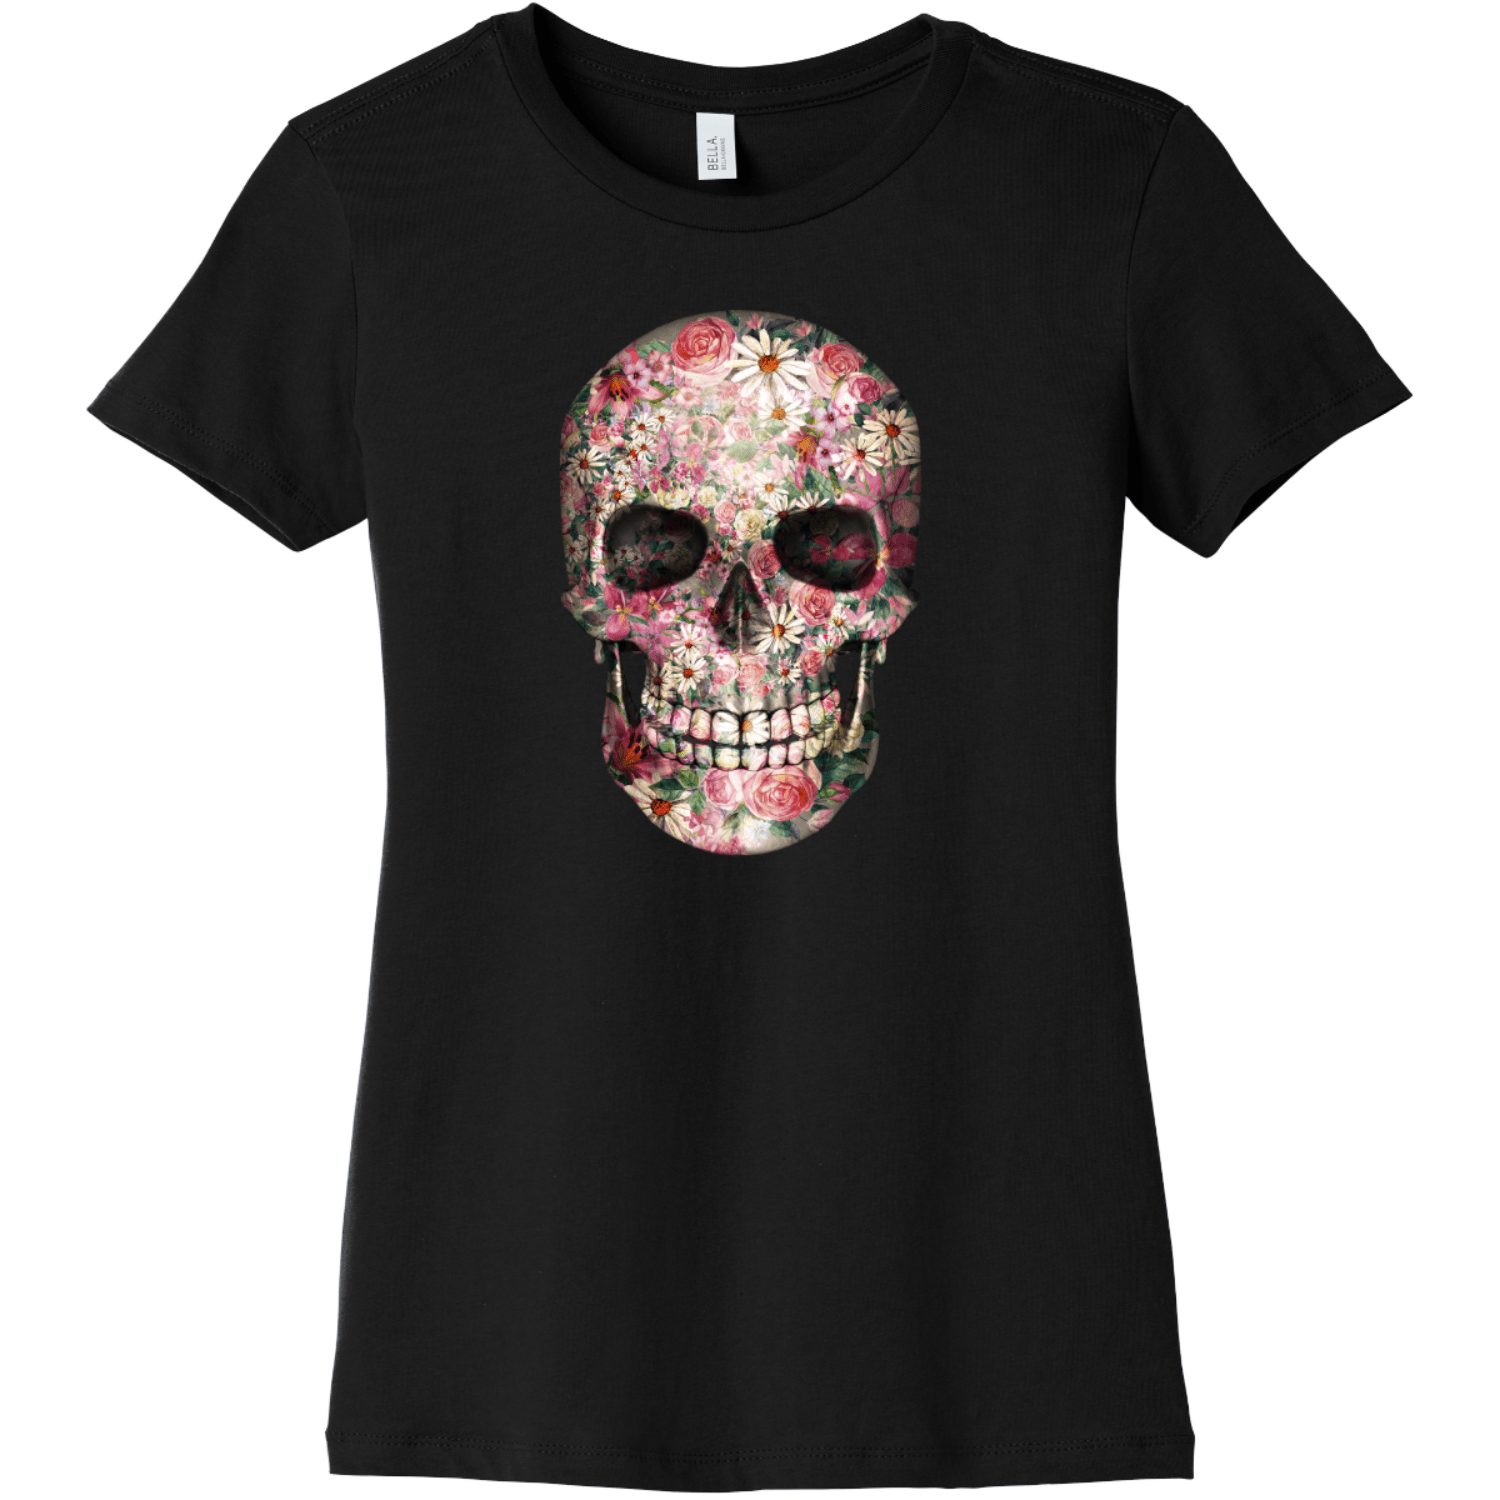 Floral Skull T Shirt For Women Black Bella Canvas 6004 Ladies The Favorite Tee